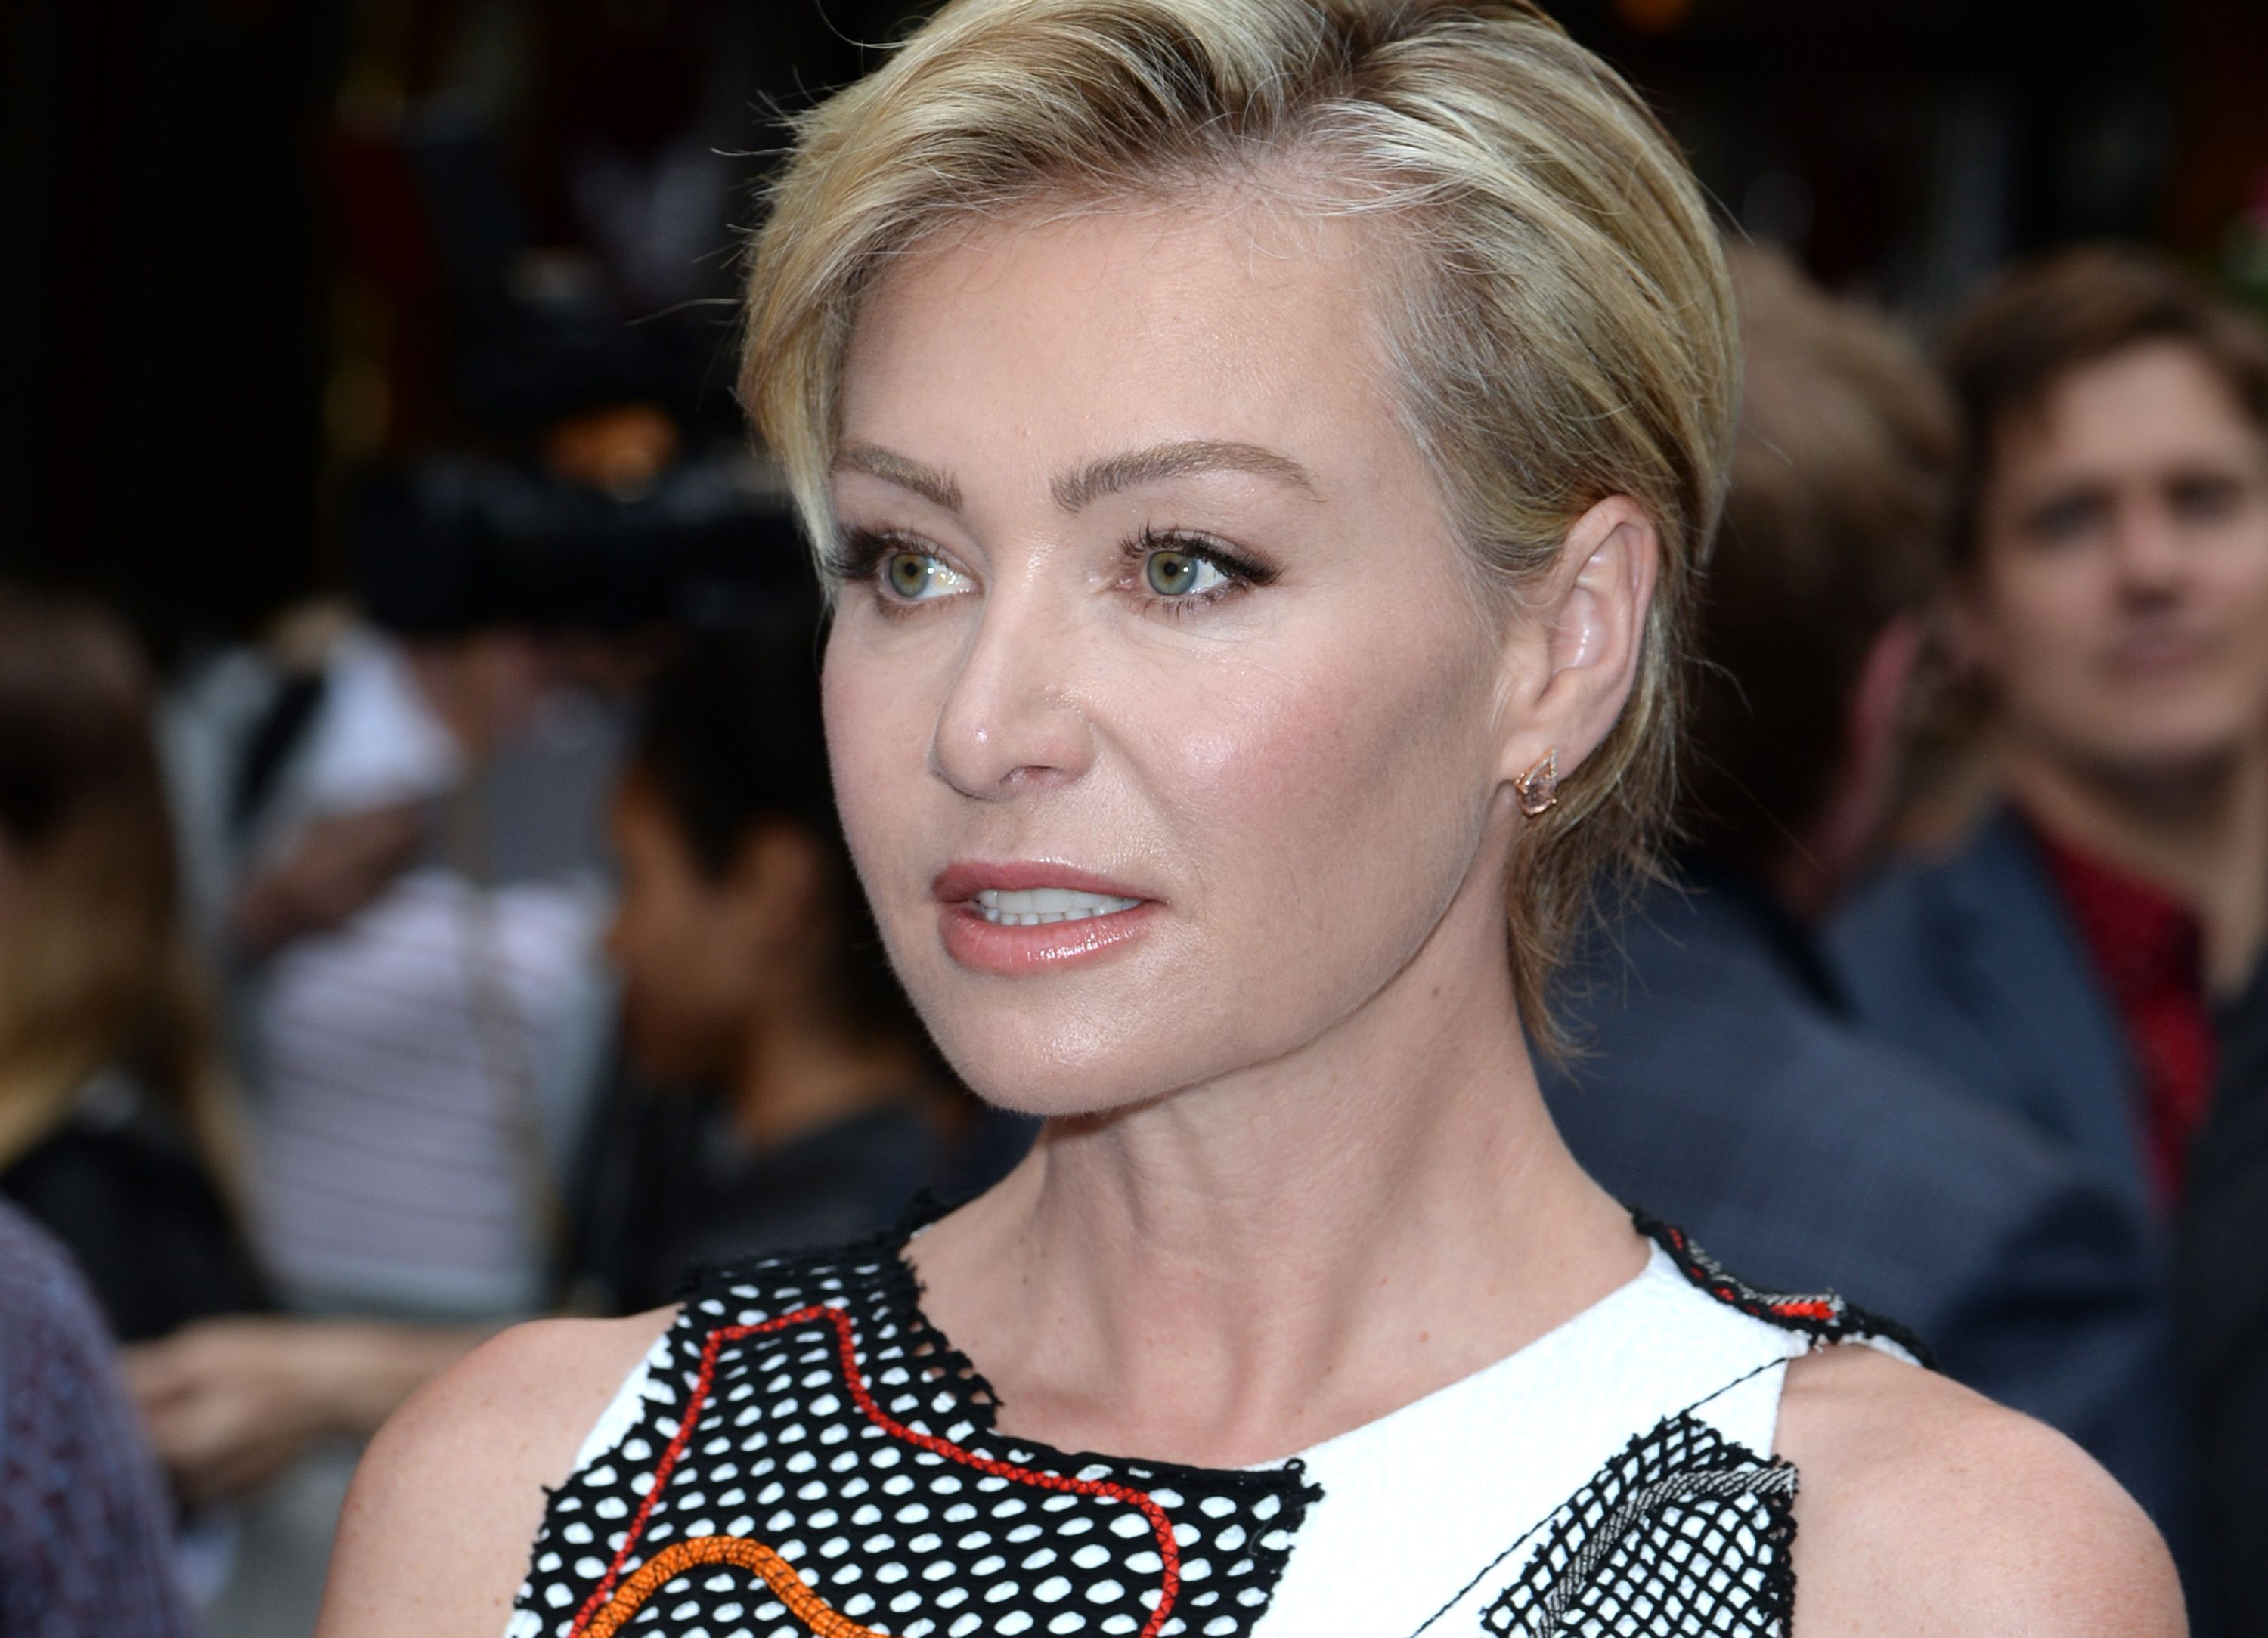 Portia De Rossi / Getty Images